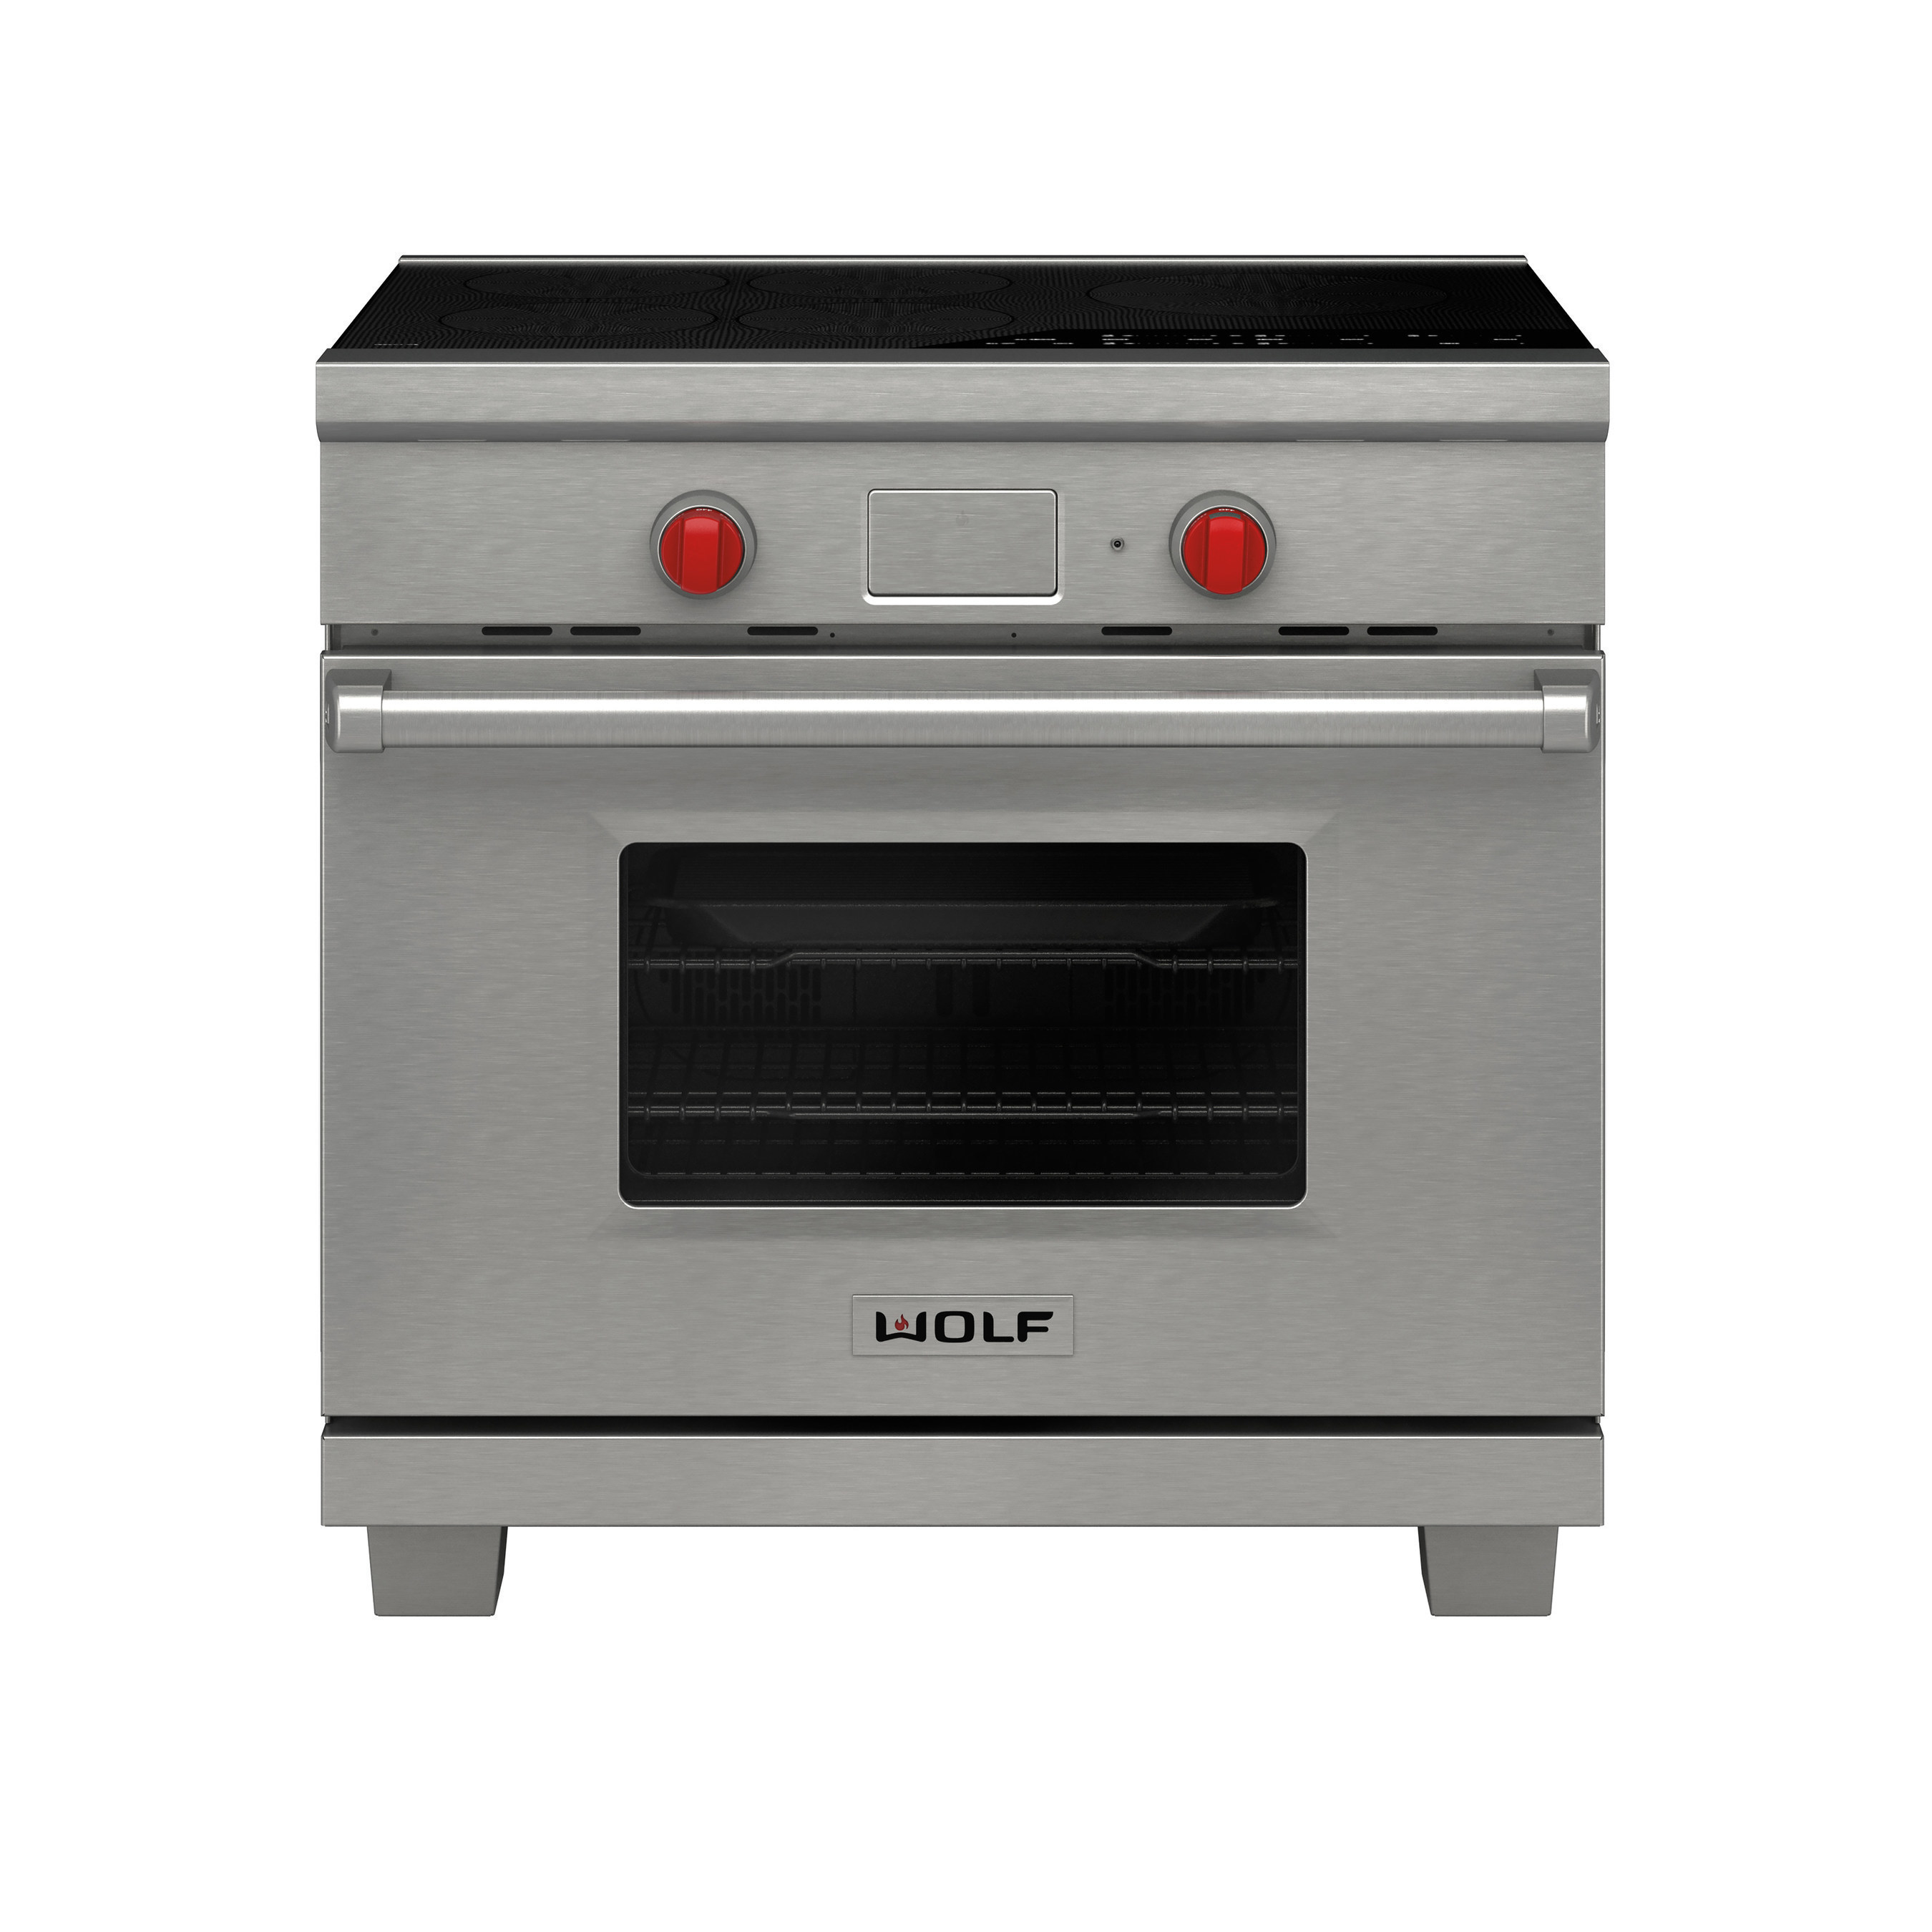 "New Wolf 36"" professional induction range"